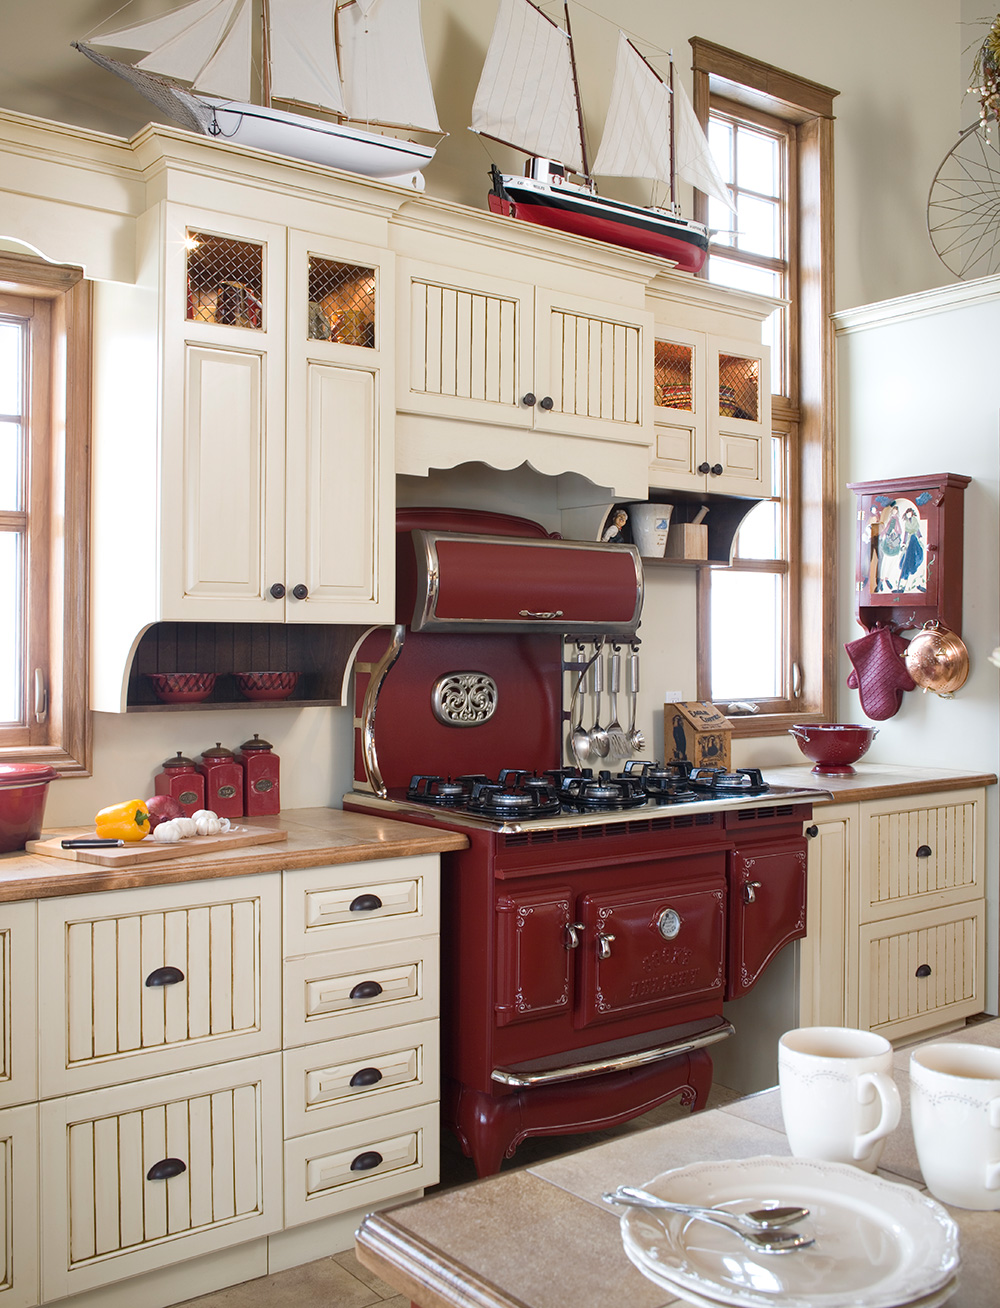 How to Add Antique Style Without Really Trying - Elmira ...